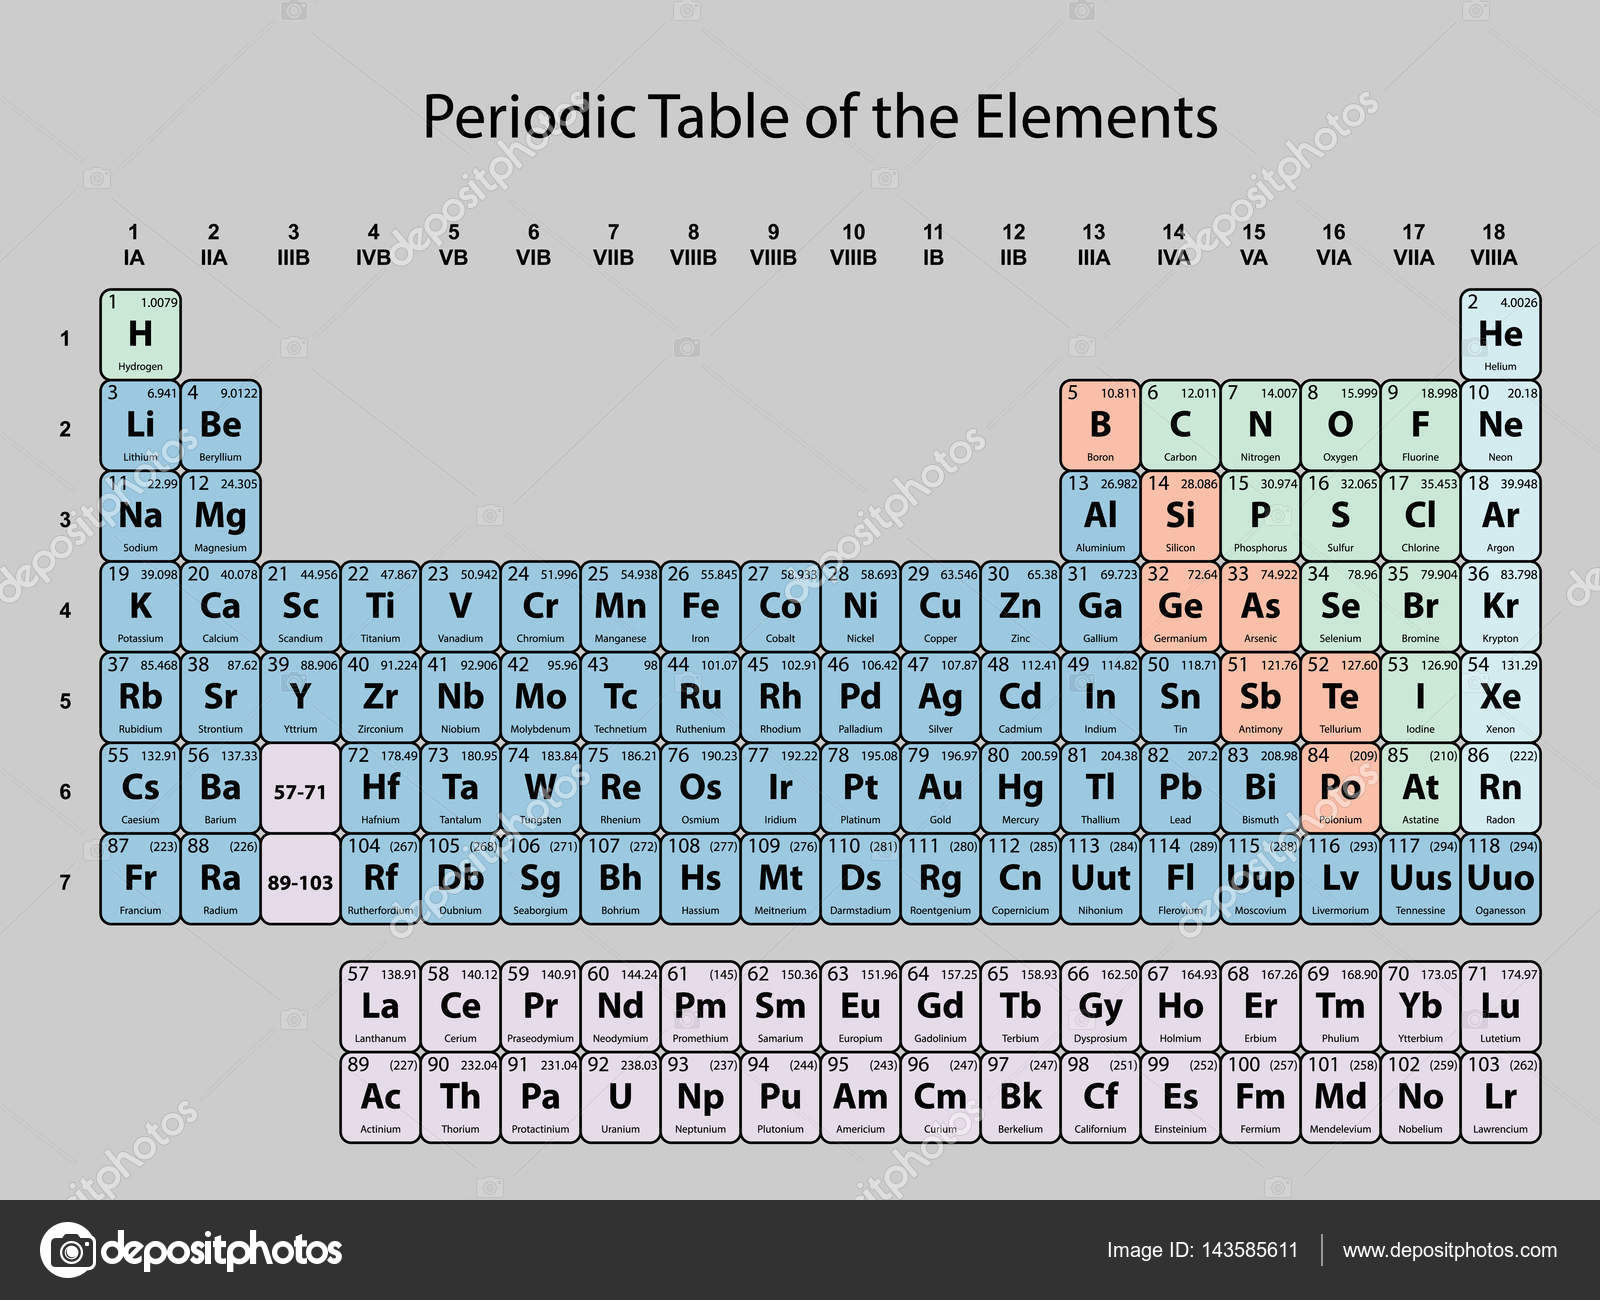 Periodic table of the elements with atomic number symbol and weight periodic table of the elements with atomic number symbol and weight with color delimitation on urtaz Gallery